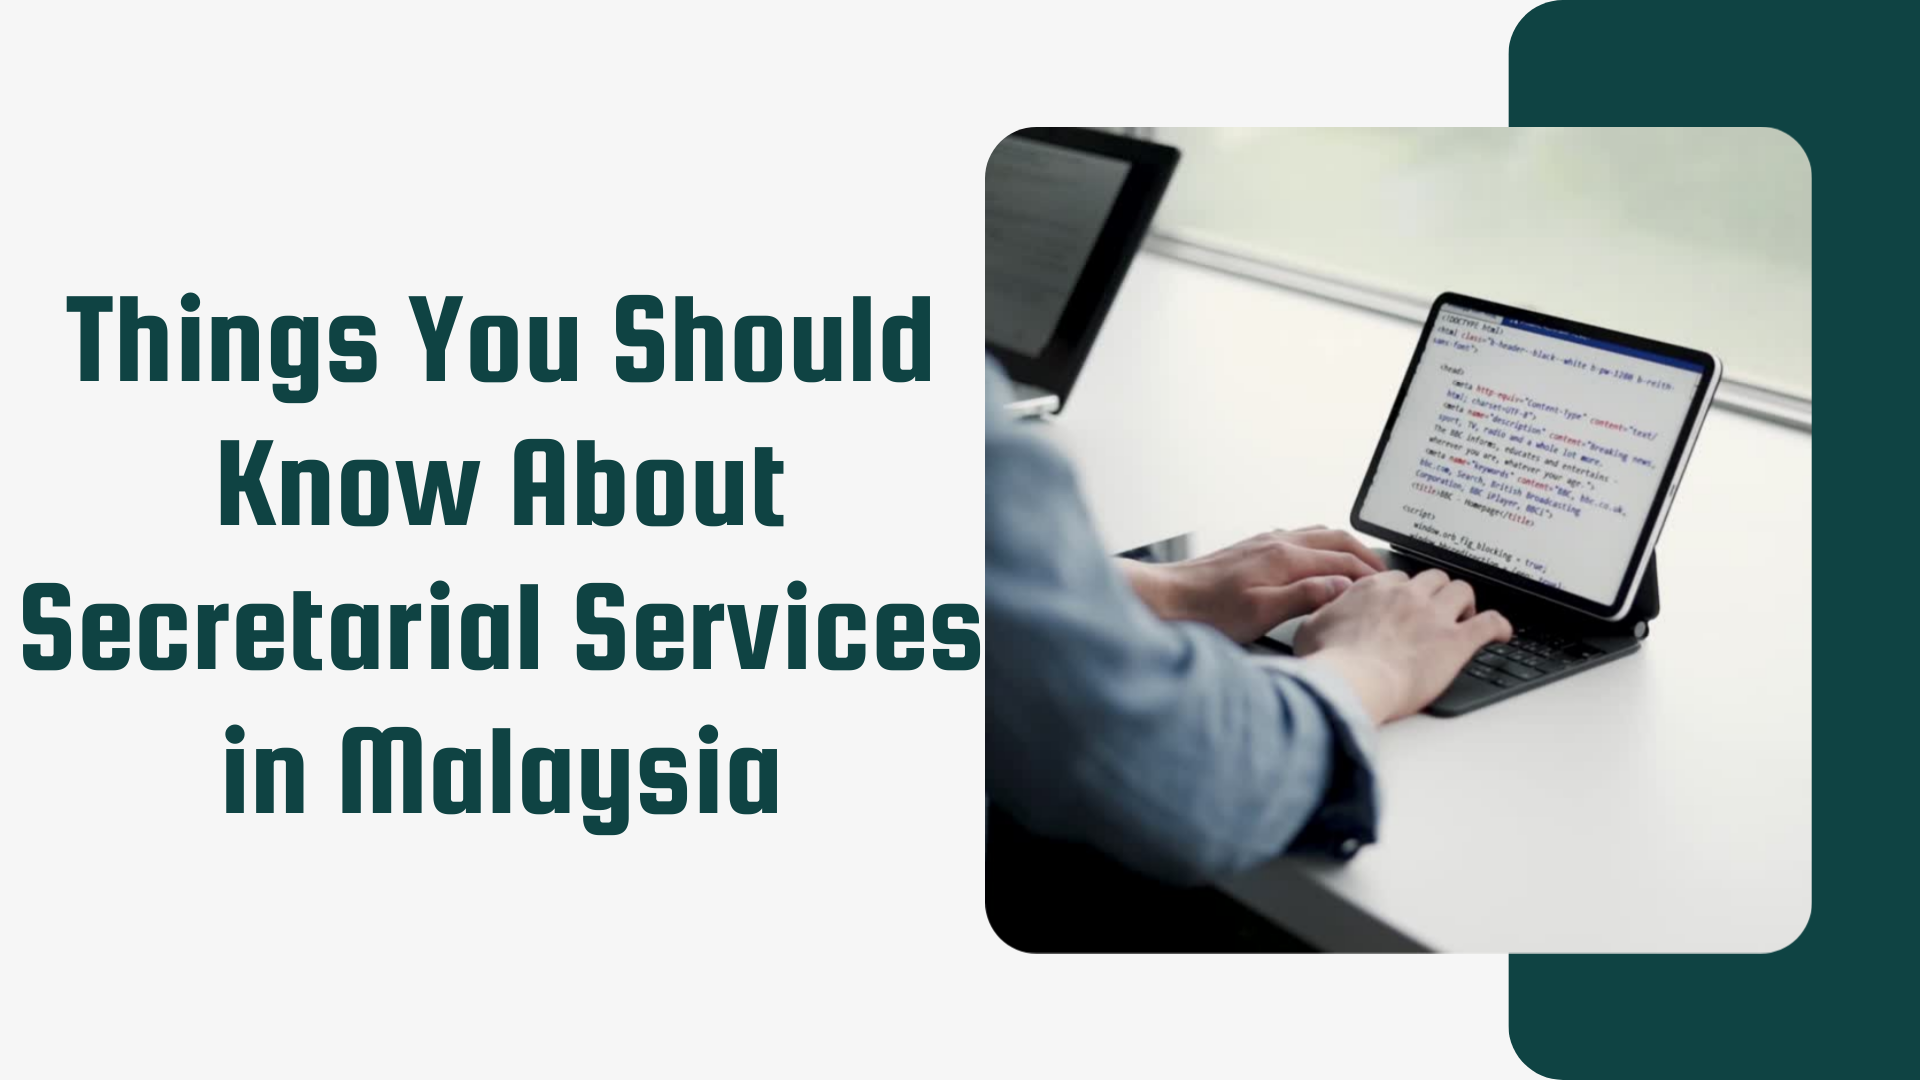 Things You Should Know About Secretarial Services in Malaysia